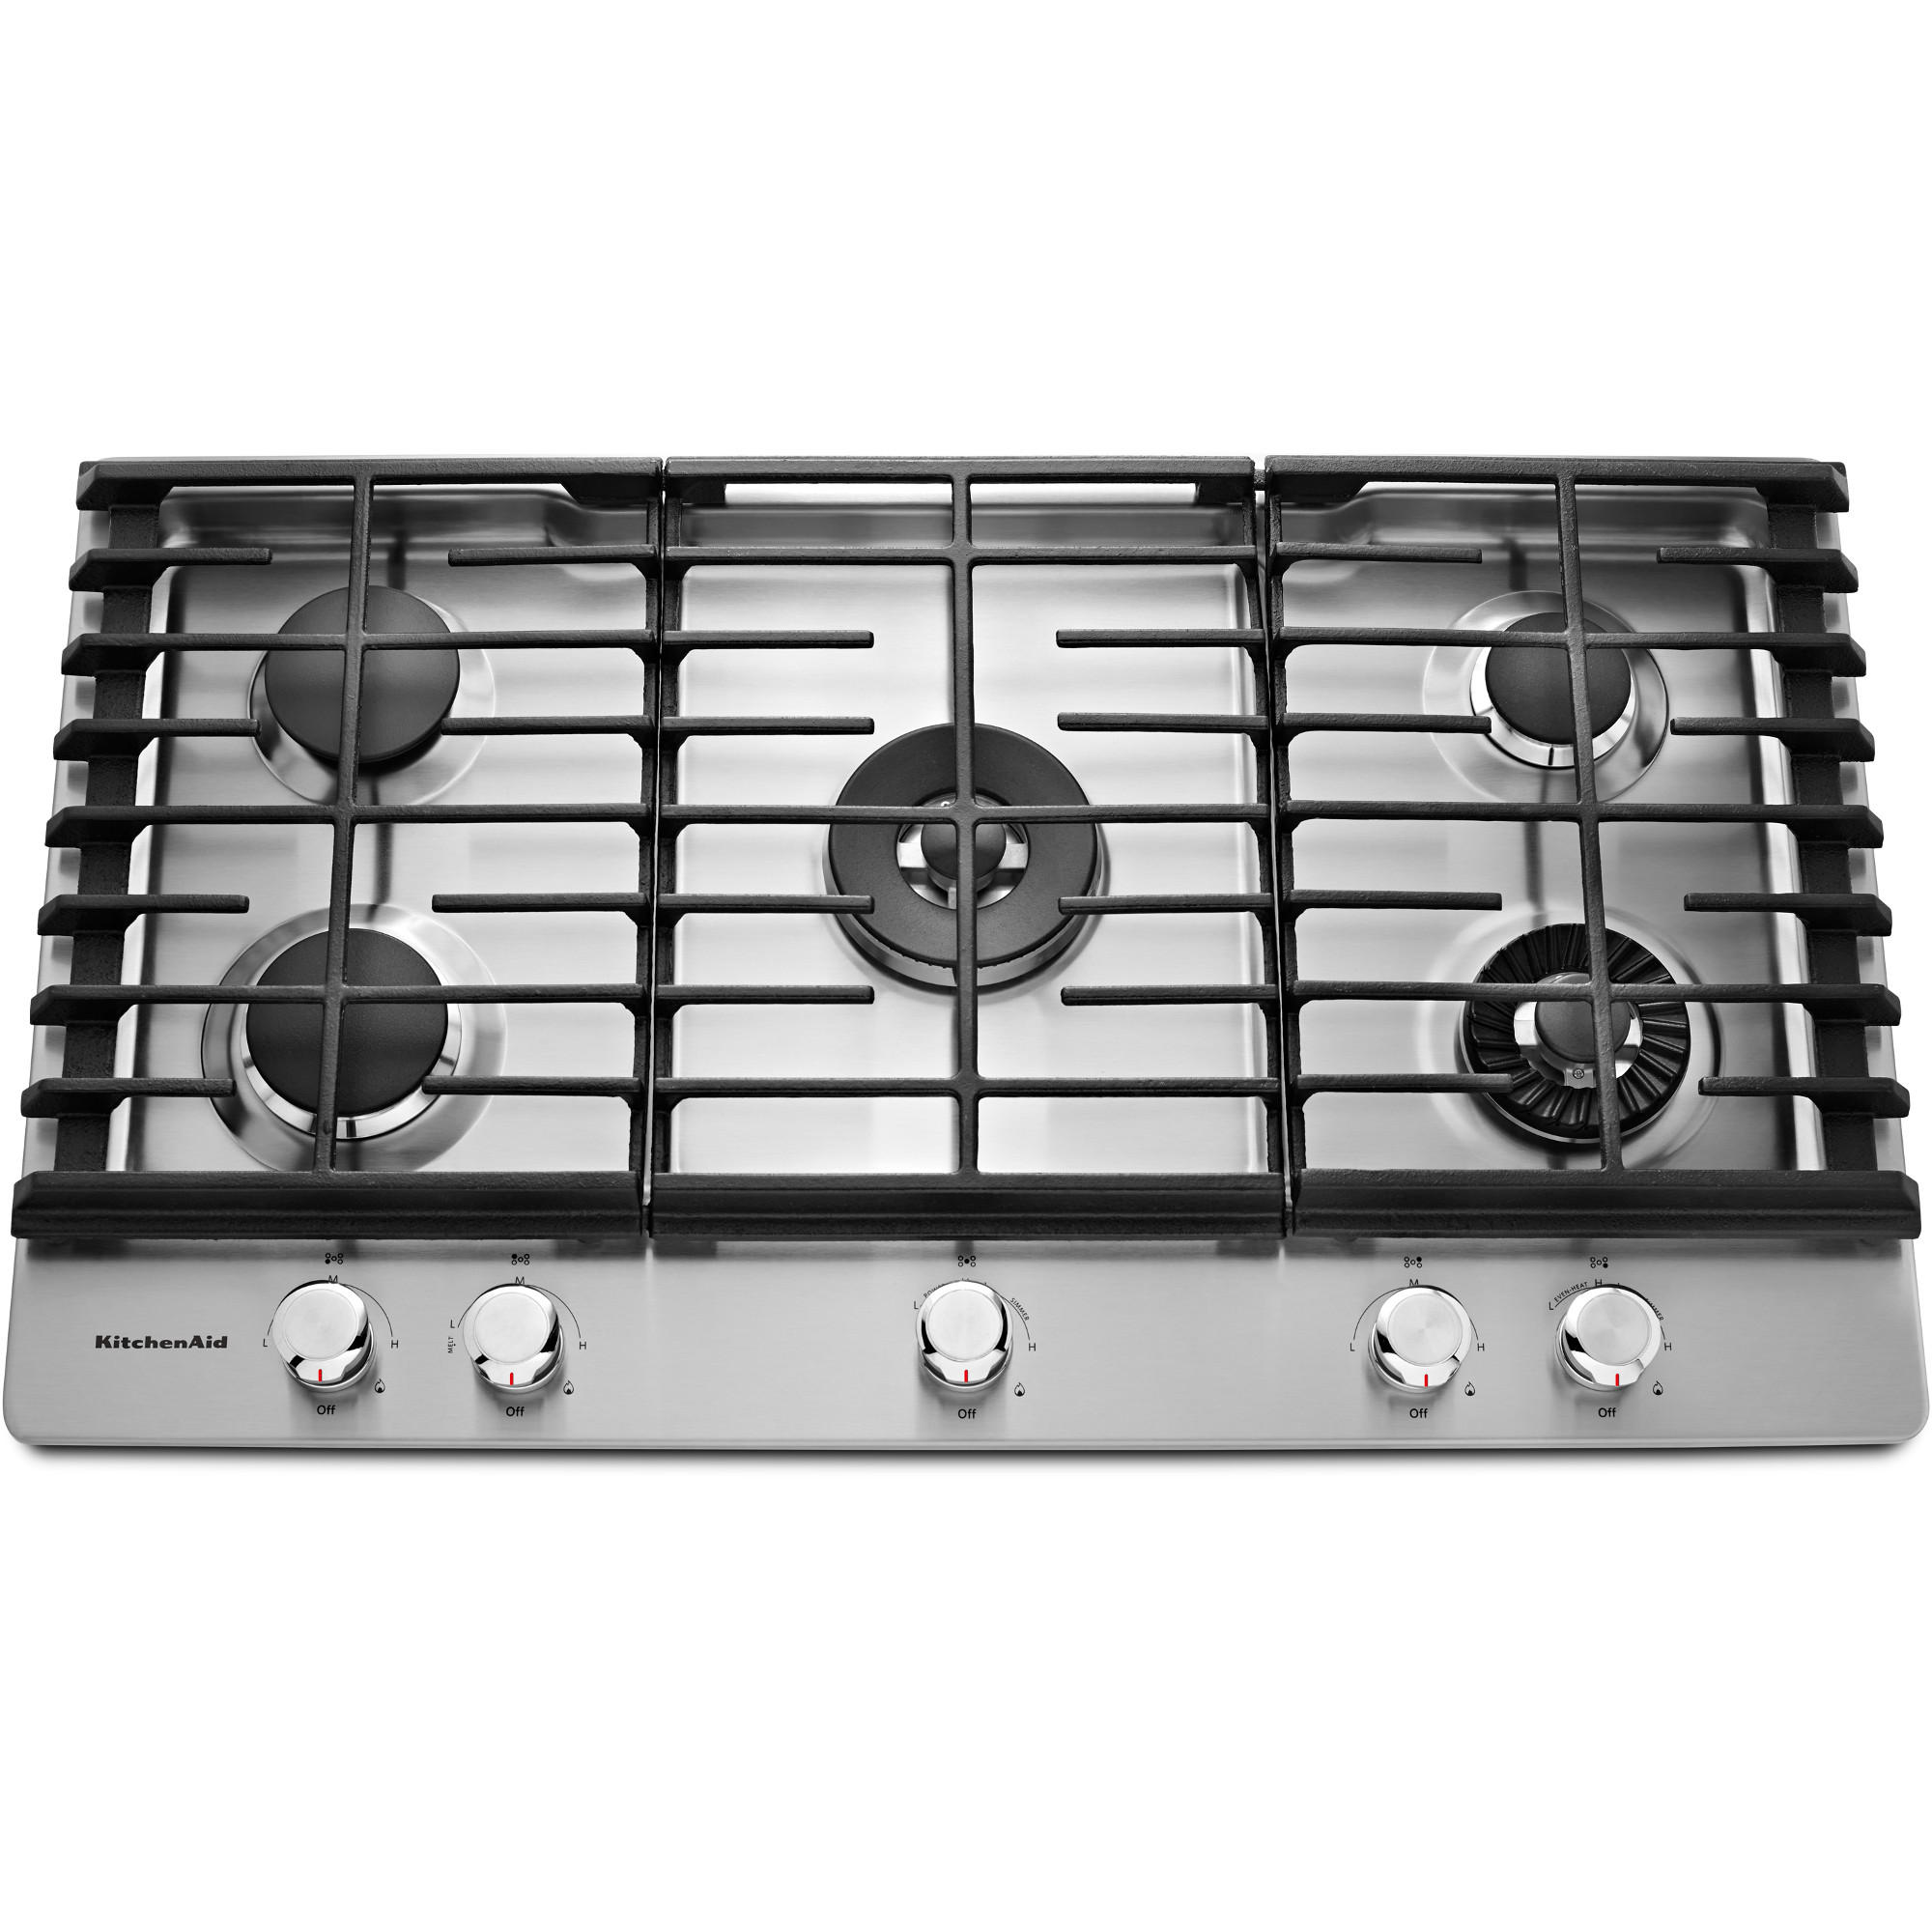 36-Gas-5-Burner-Cooktop-w-Griddle-Stainless-Steel